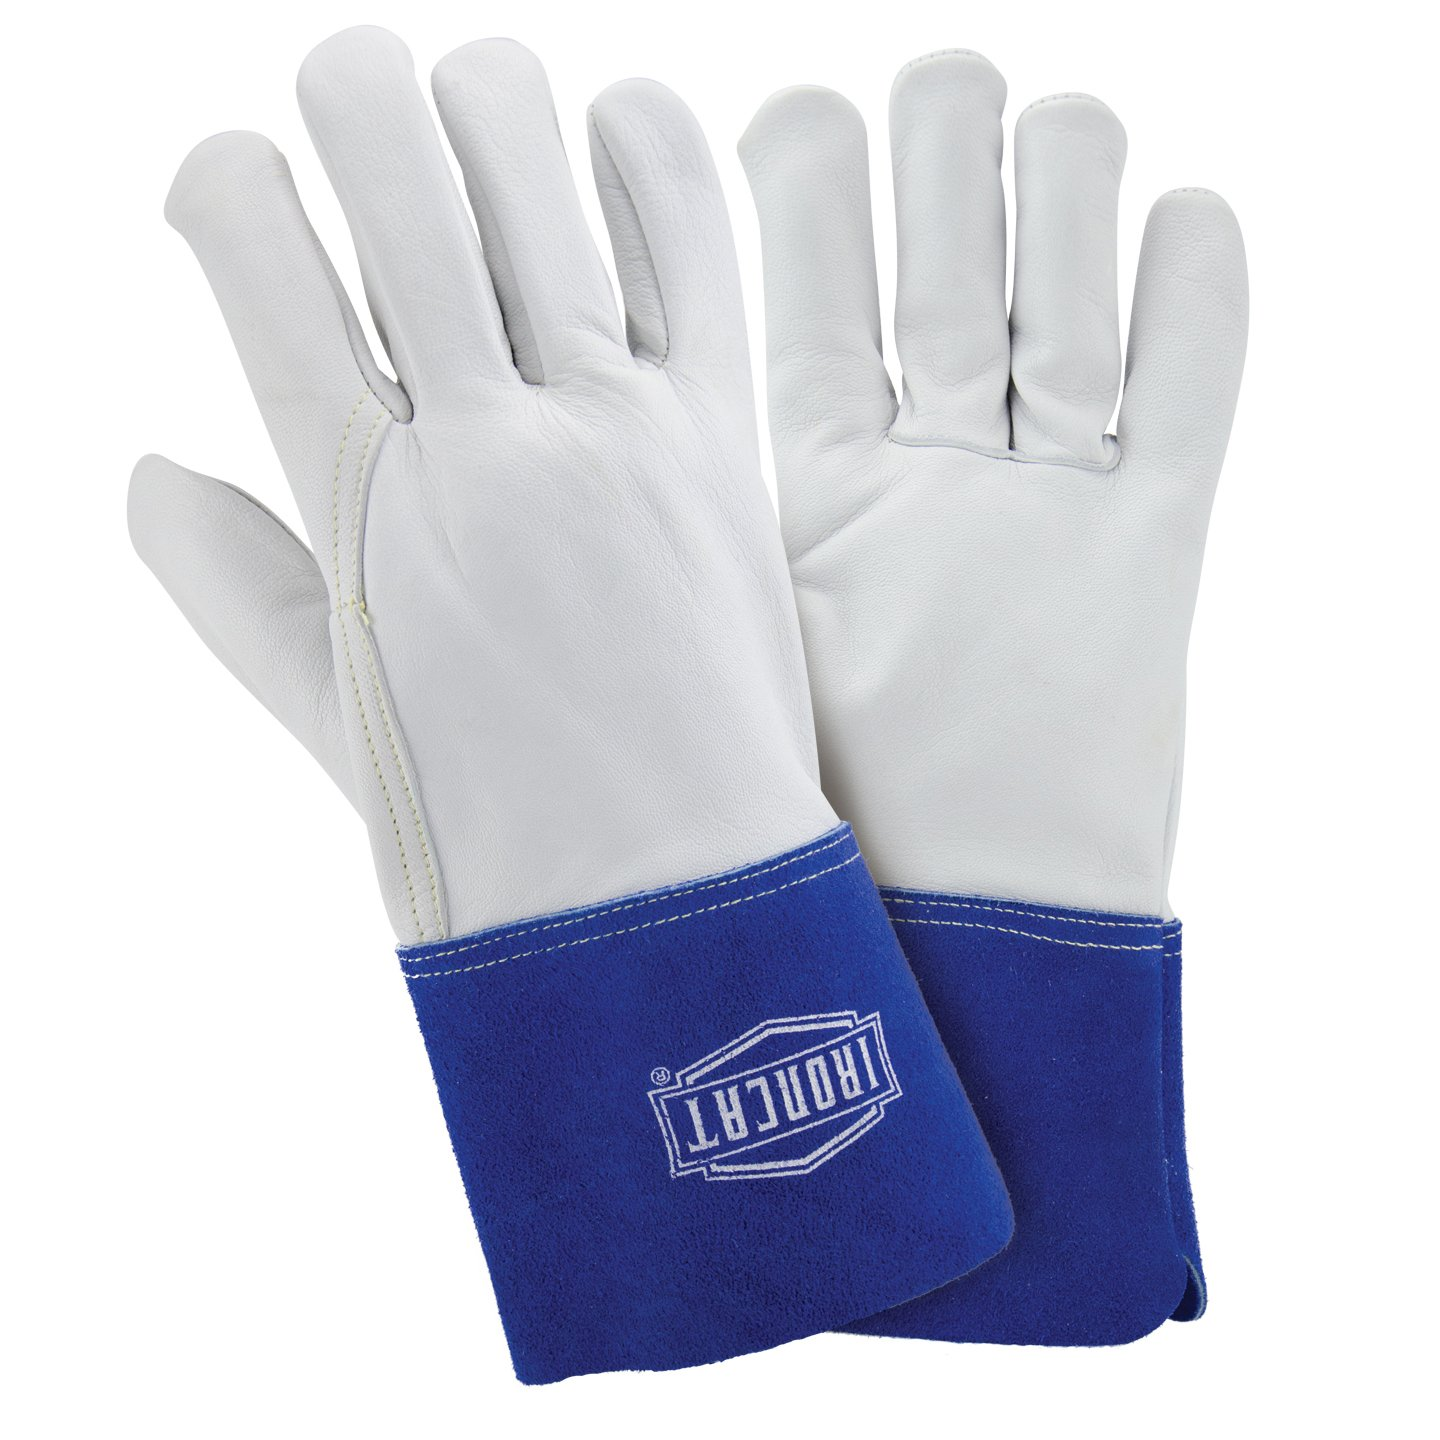 West Chester IRONCAT 6142 Premium Grain Goatskin Leather TIG Welding Gloves: Large, 12 Pairs